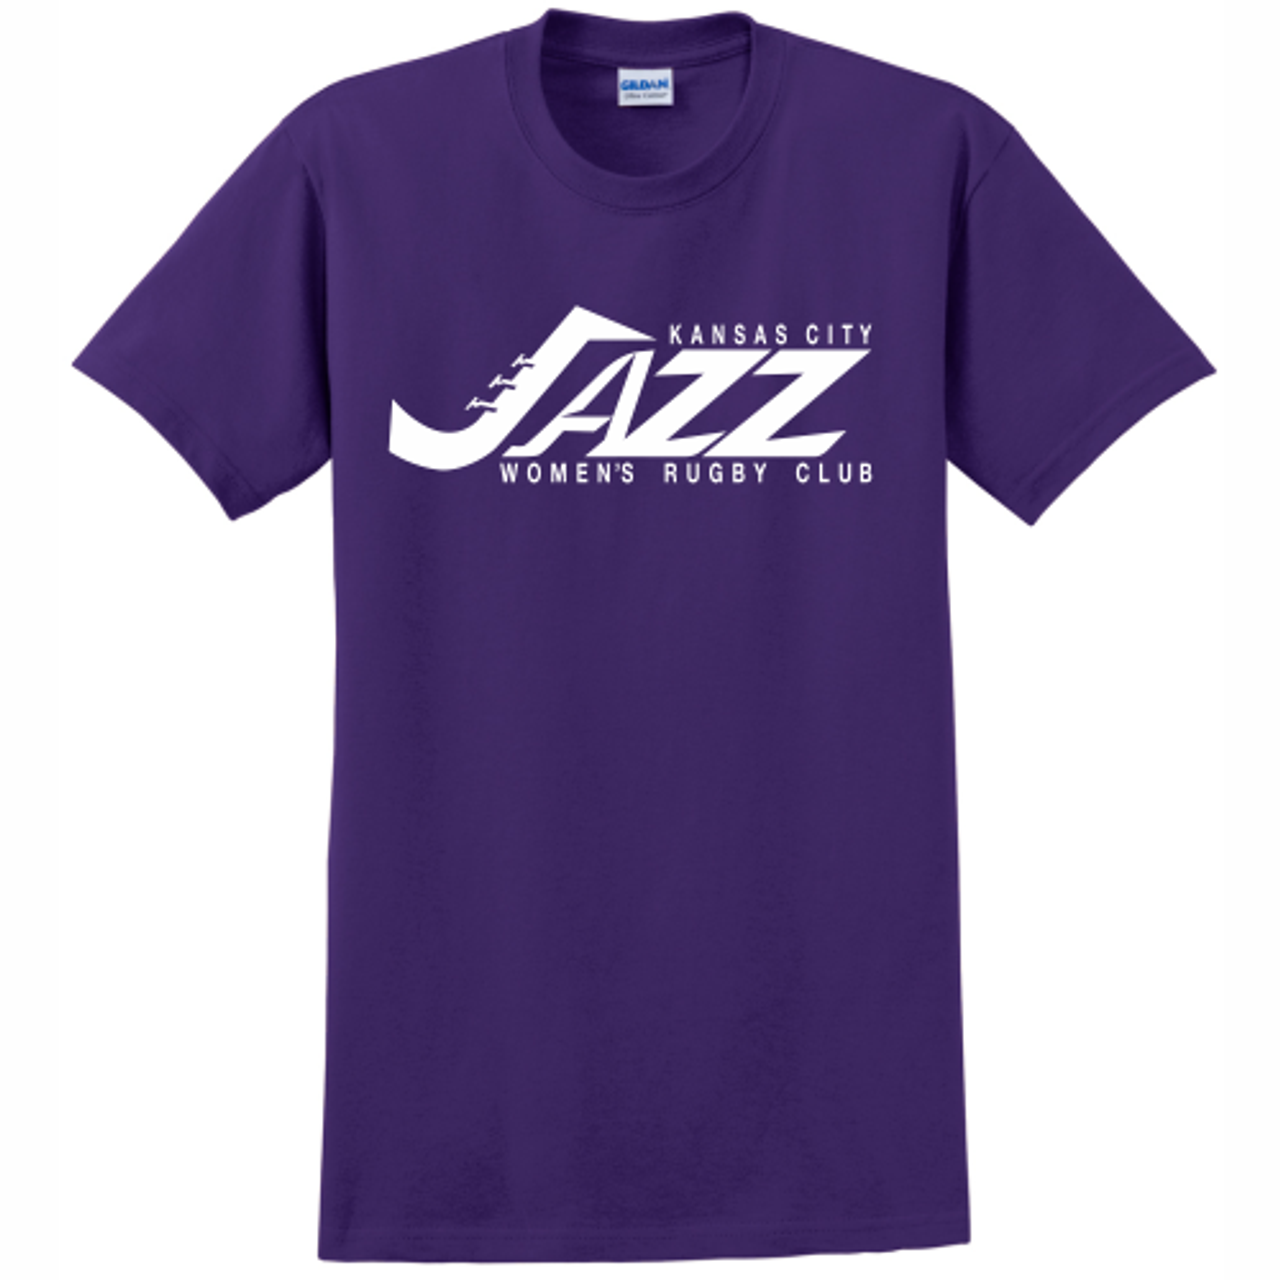 KC Jazz Cotton Tee, Purple